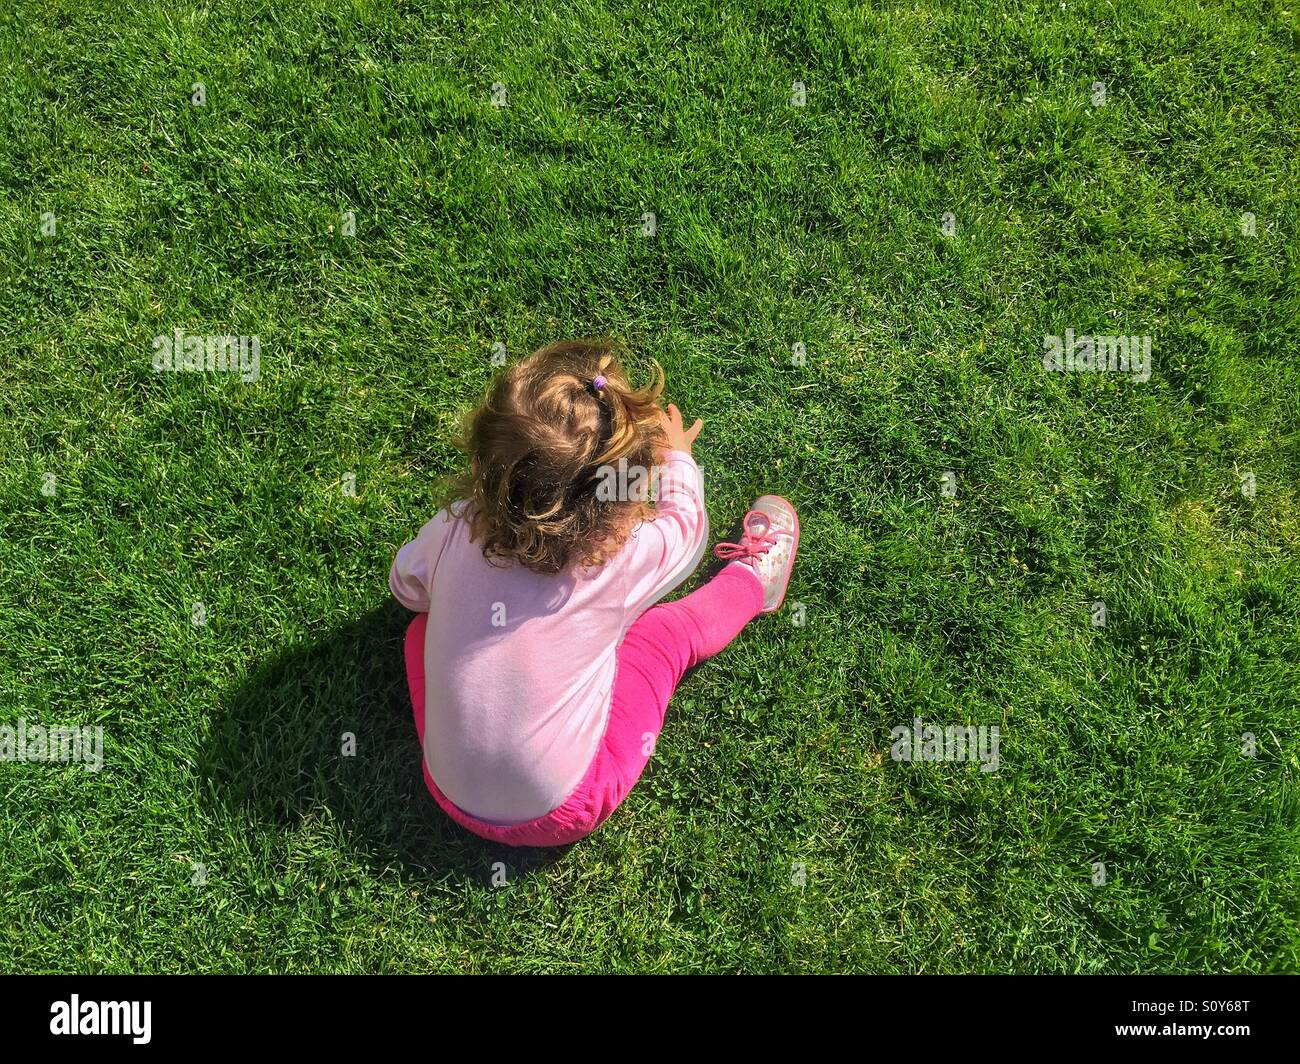 Baby girl sitting and expiring green grass - Stock Image